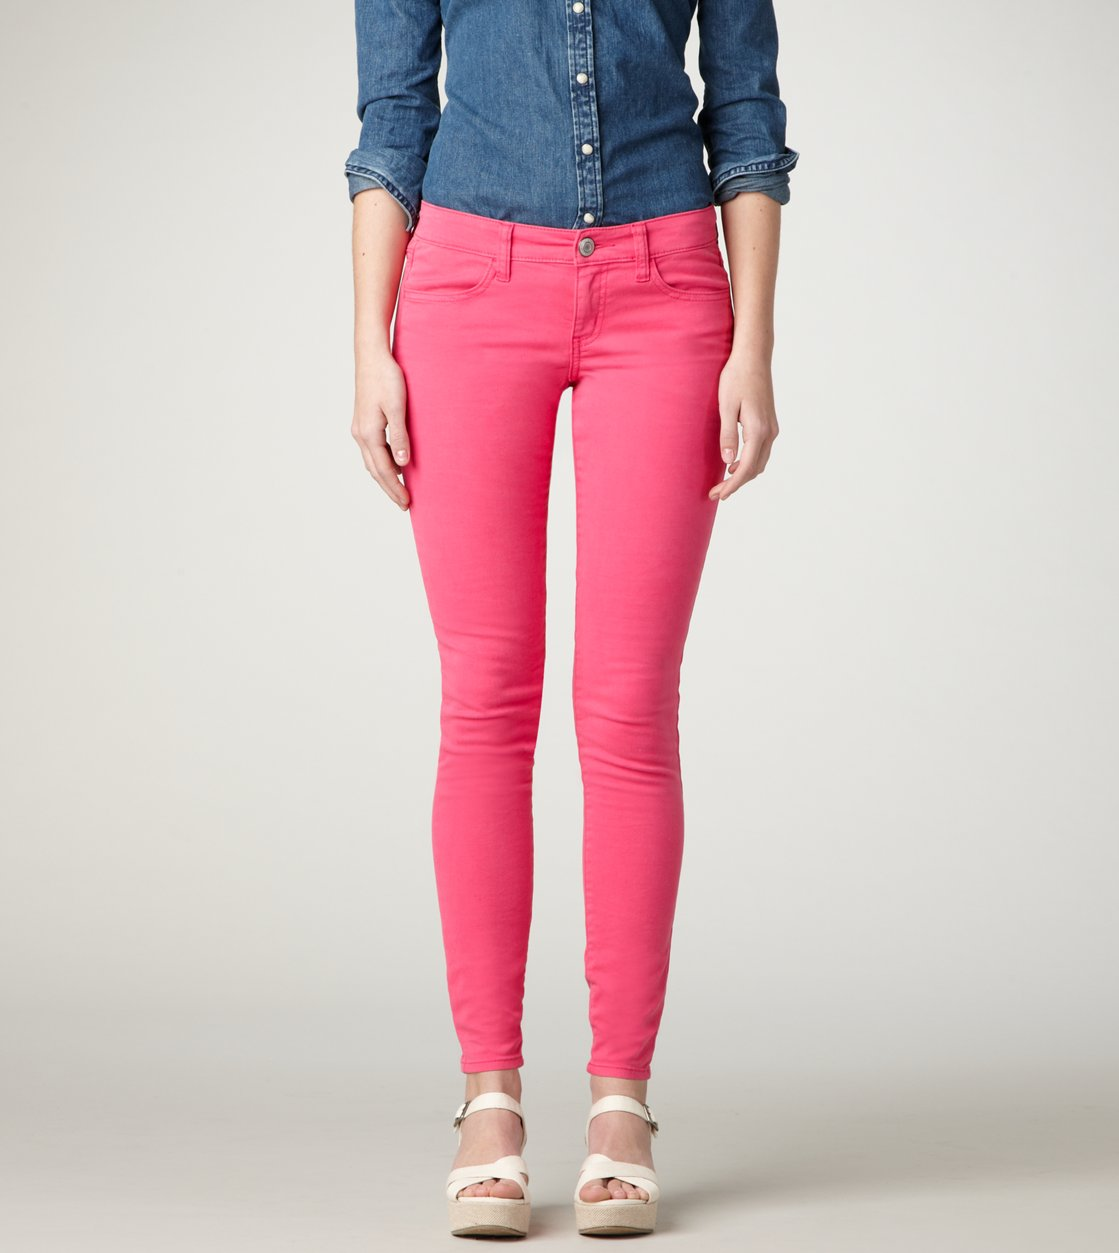 Jegging - American Eagle Outfitters